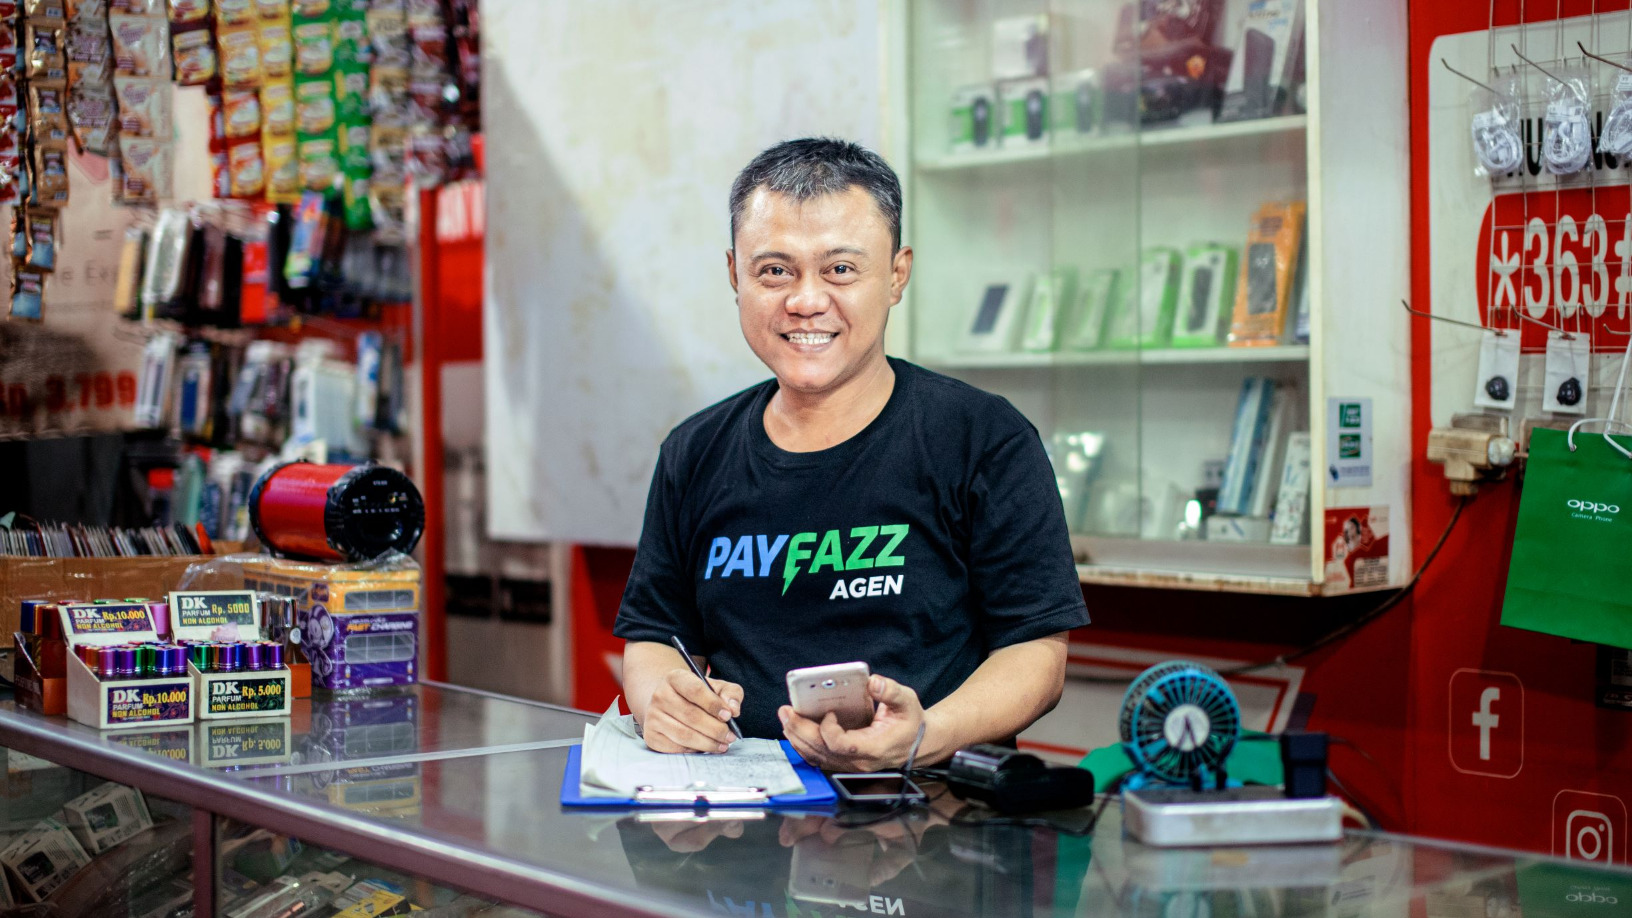 Payfazz aims to be Indonesia's first on-demand financial services company